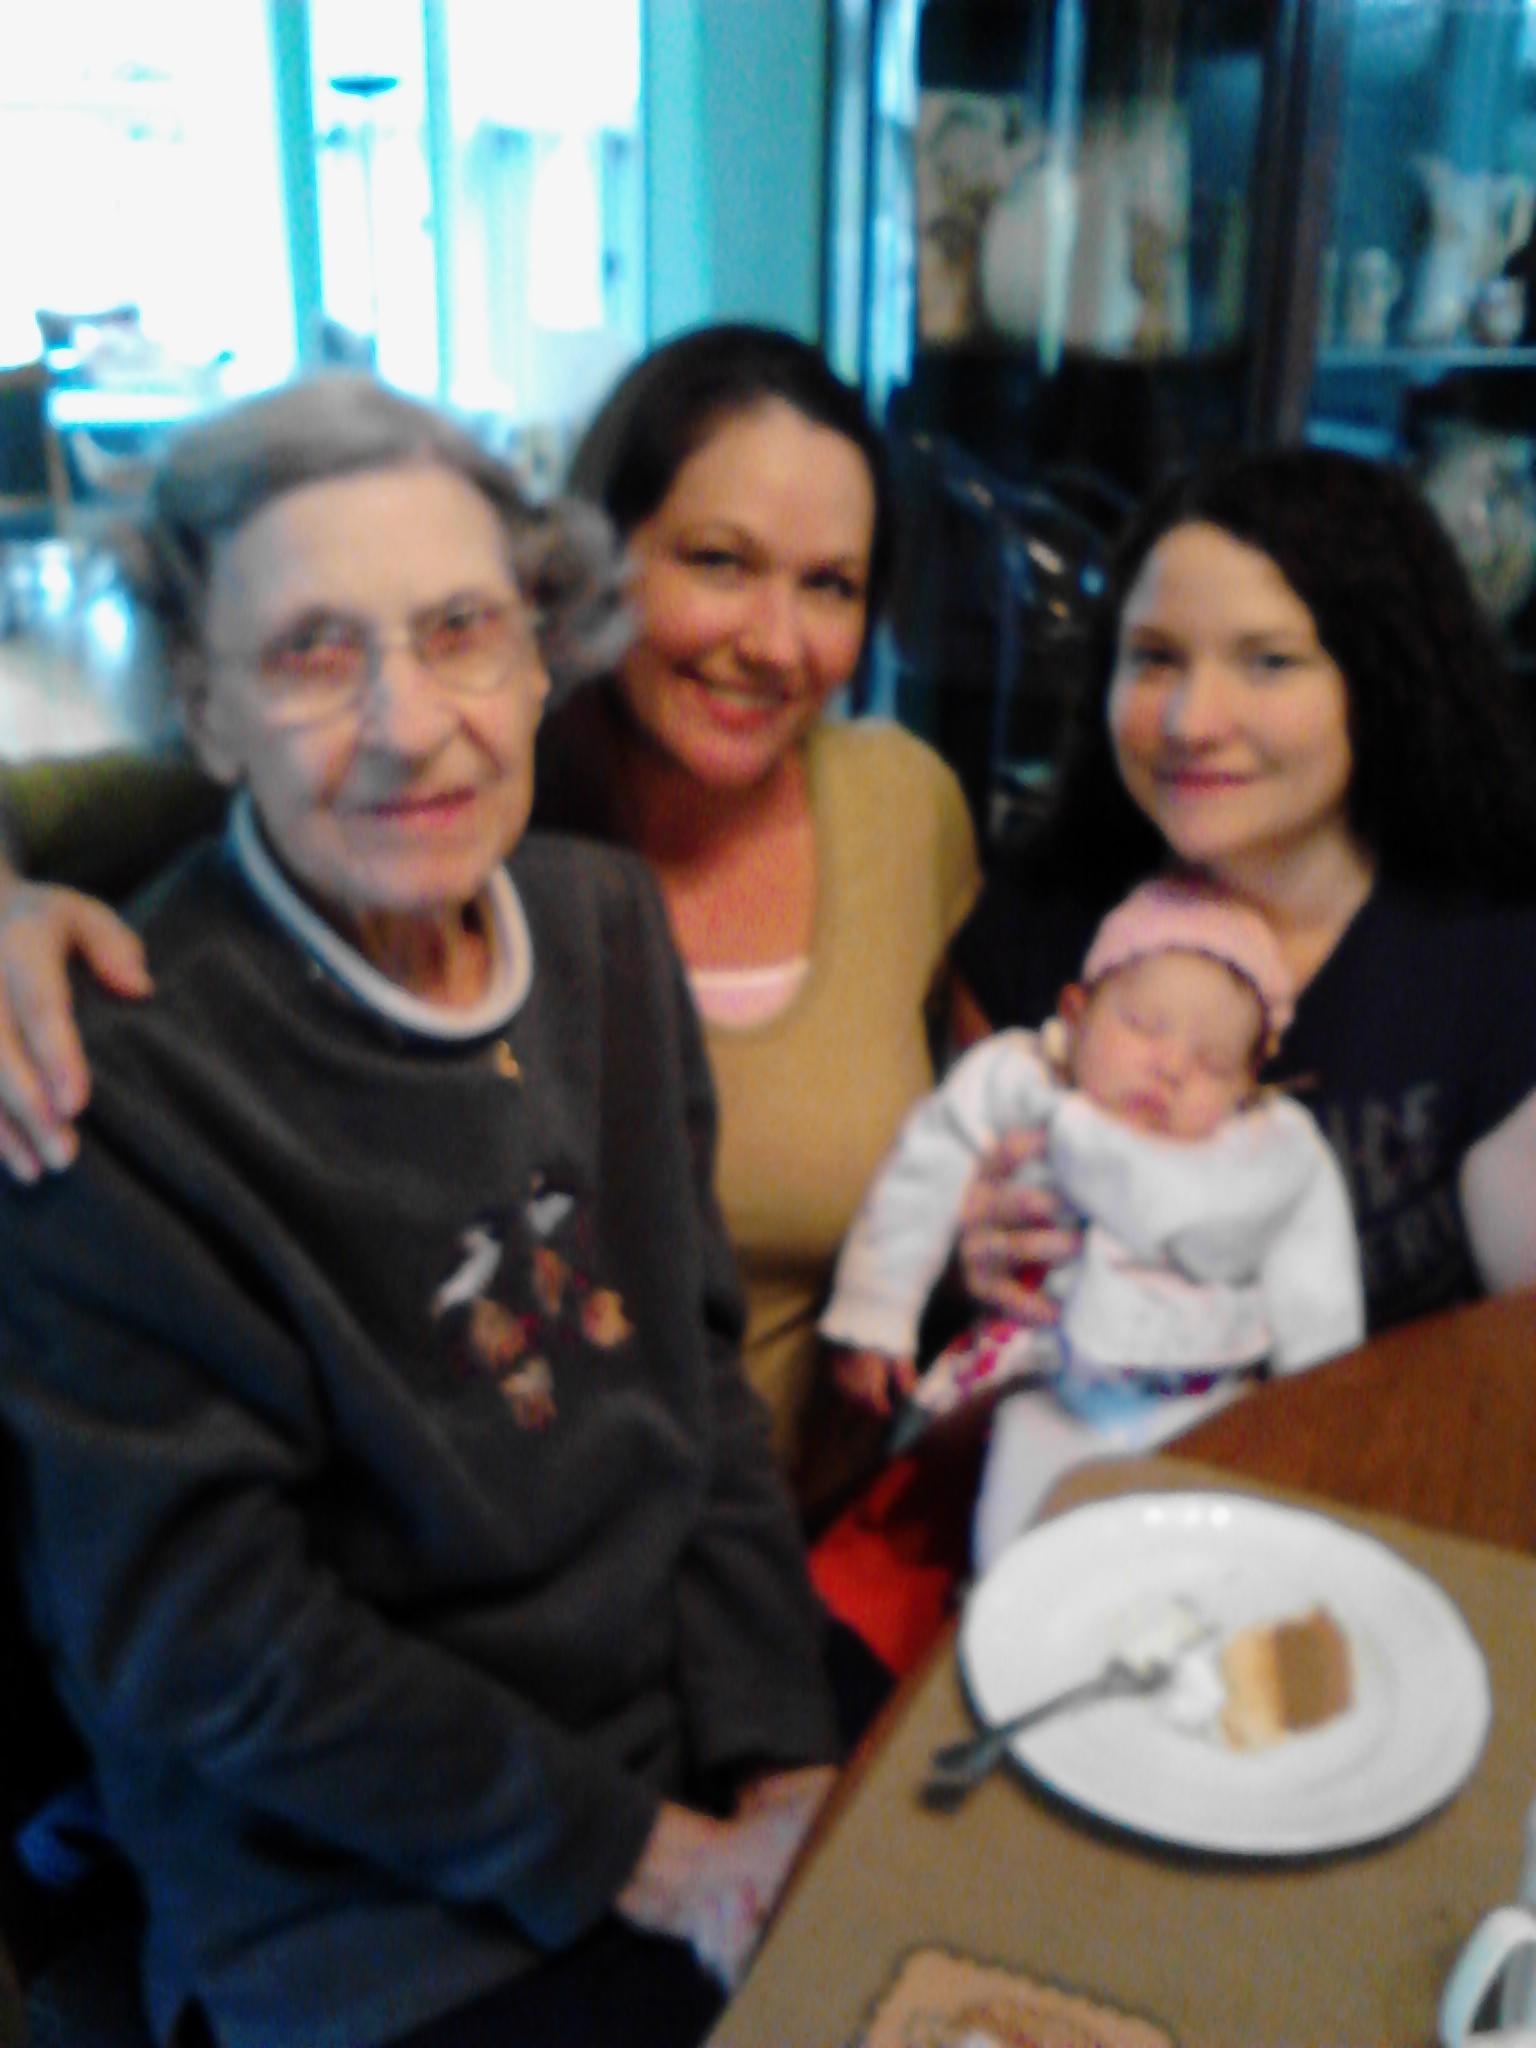 Four Generations of Babies by mary.keenantownsend